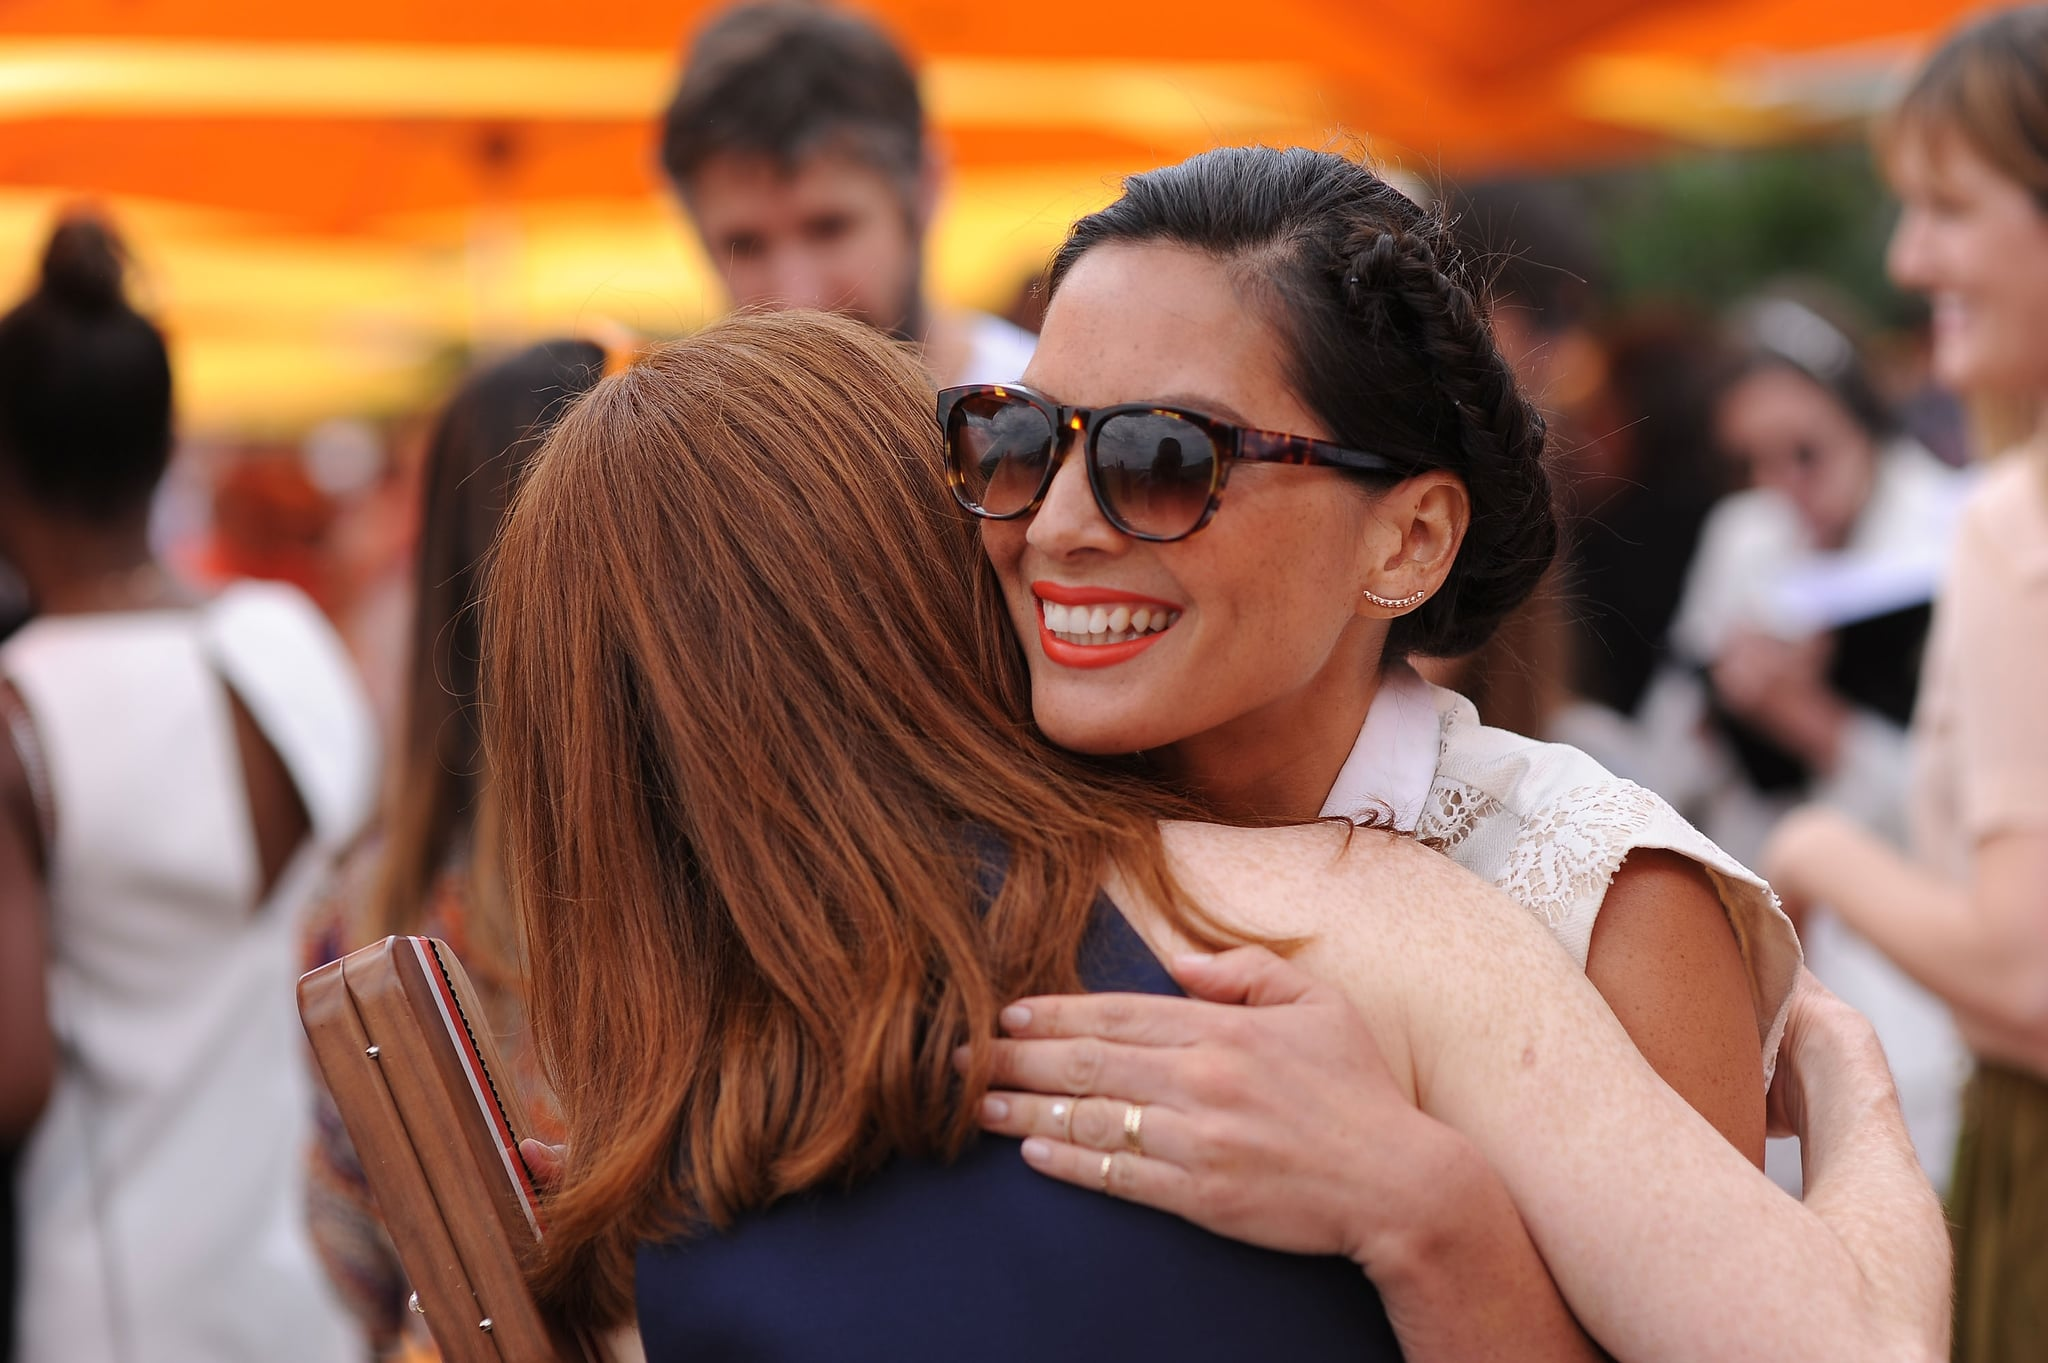 Olivia lit up with a smile as she hugged Julianne.